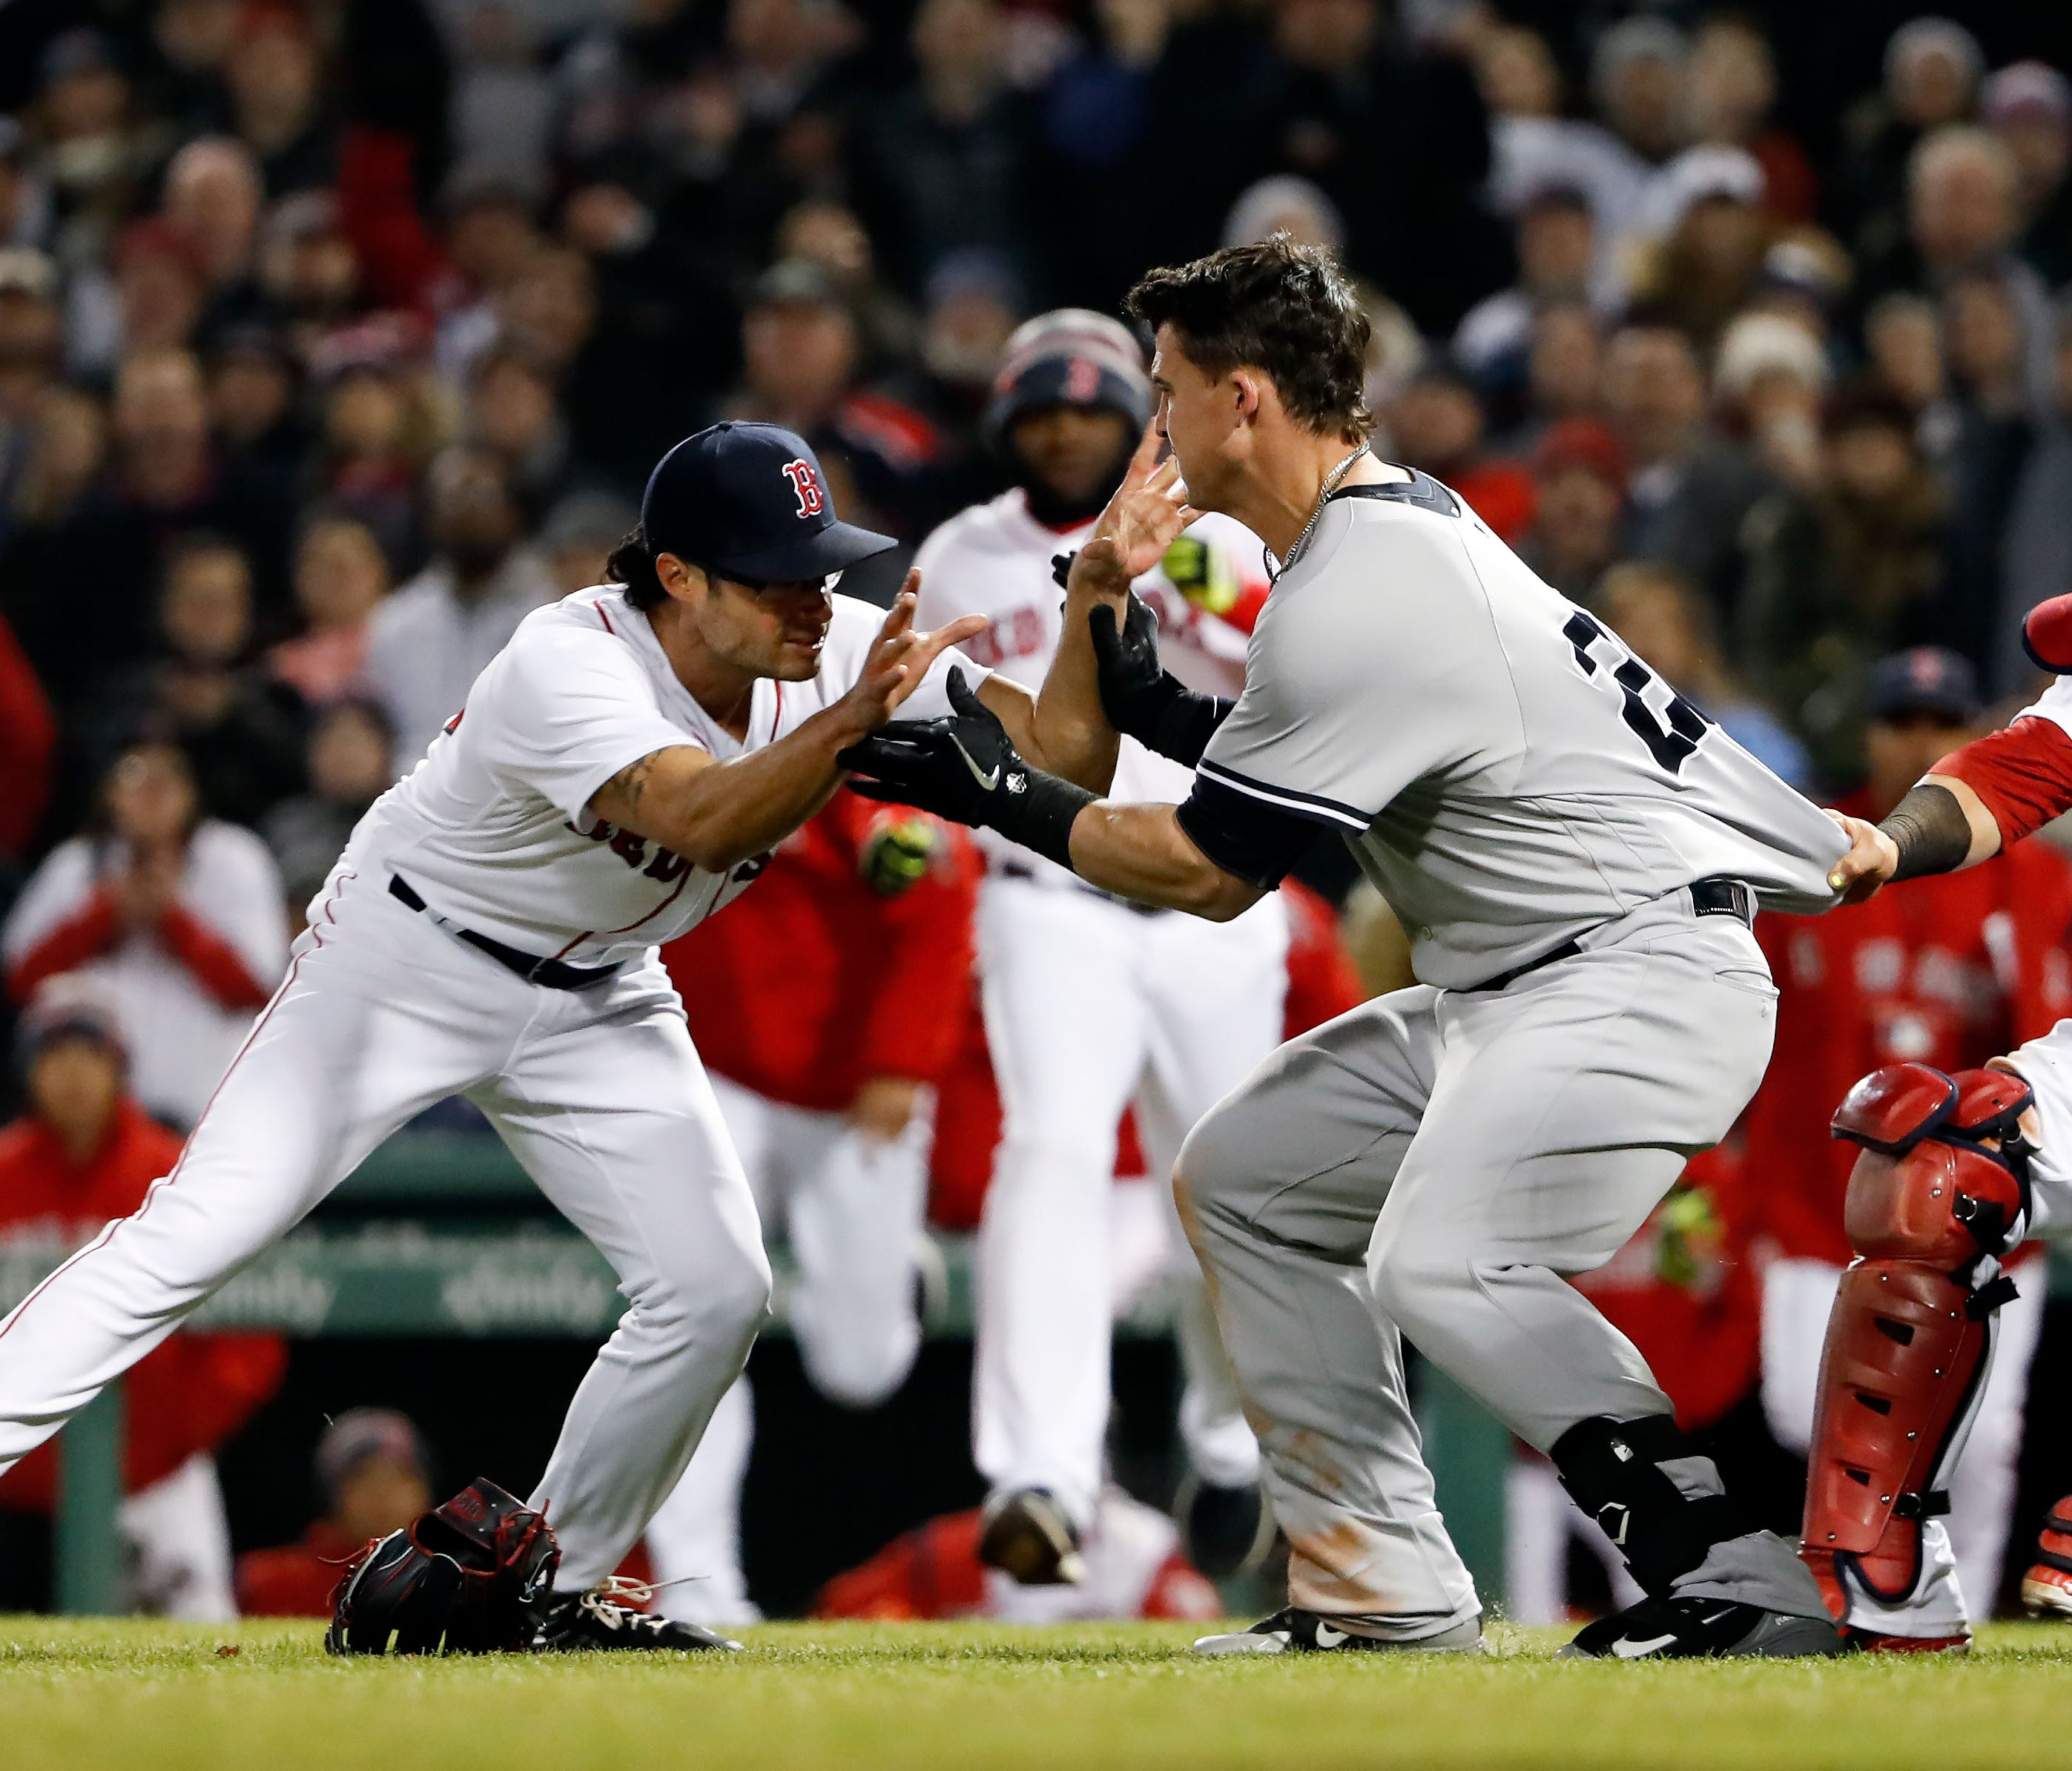 Joe Kelly (left) and Tyler Austin touched off a battle royale in the seventh inning at Fenway Park on Wednesday.